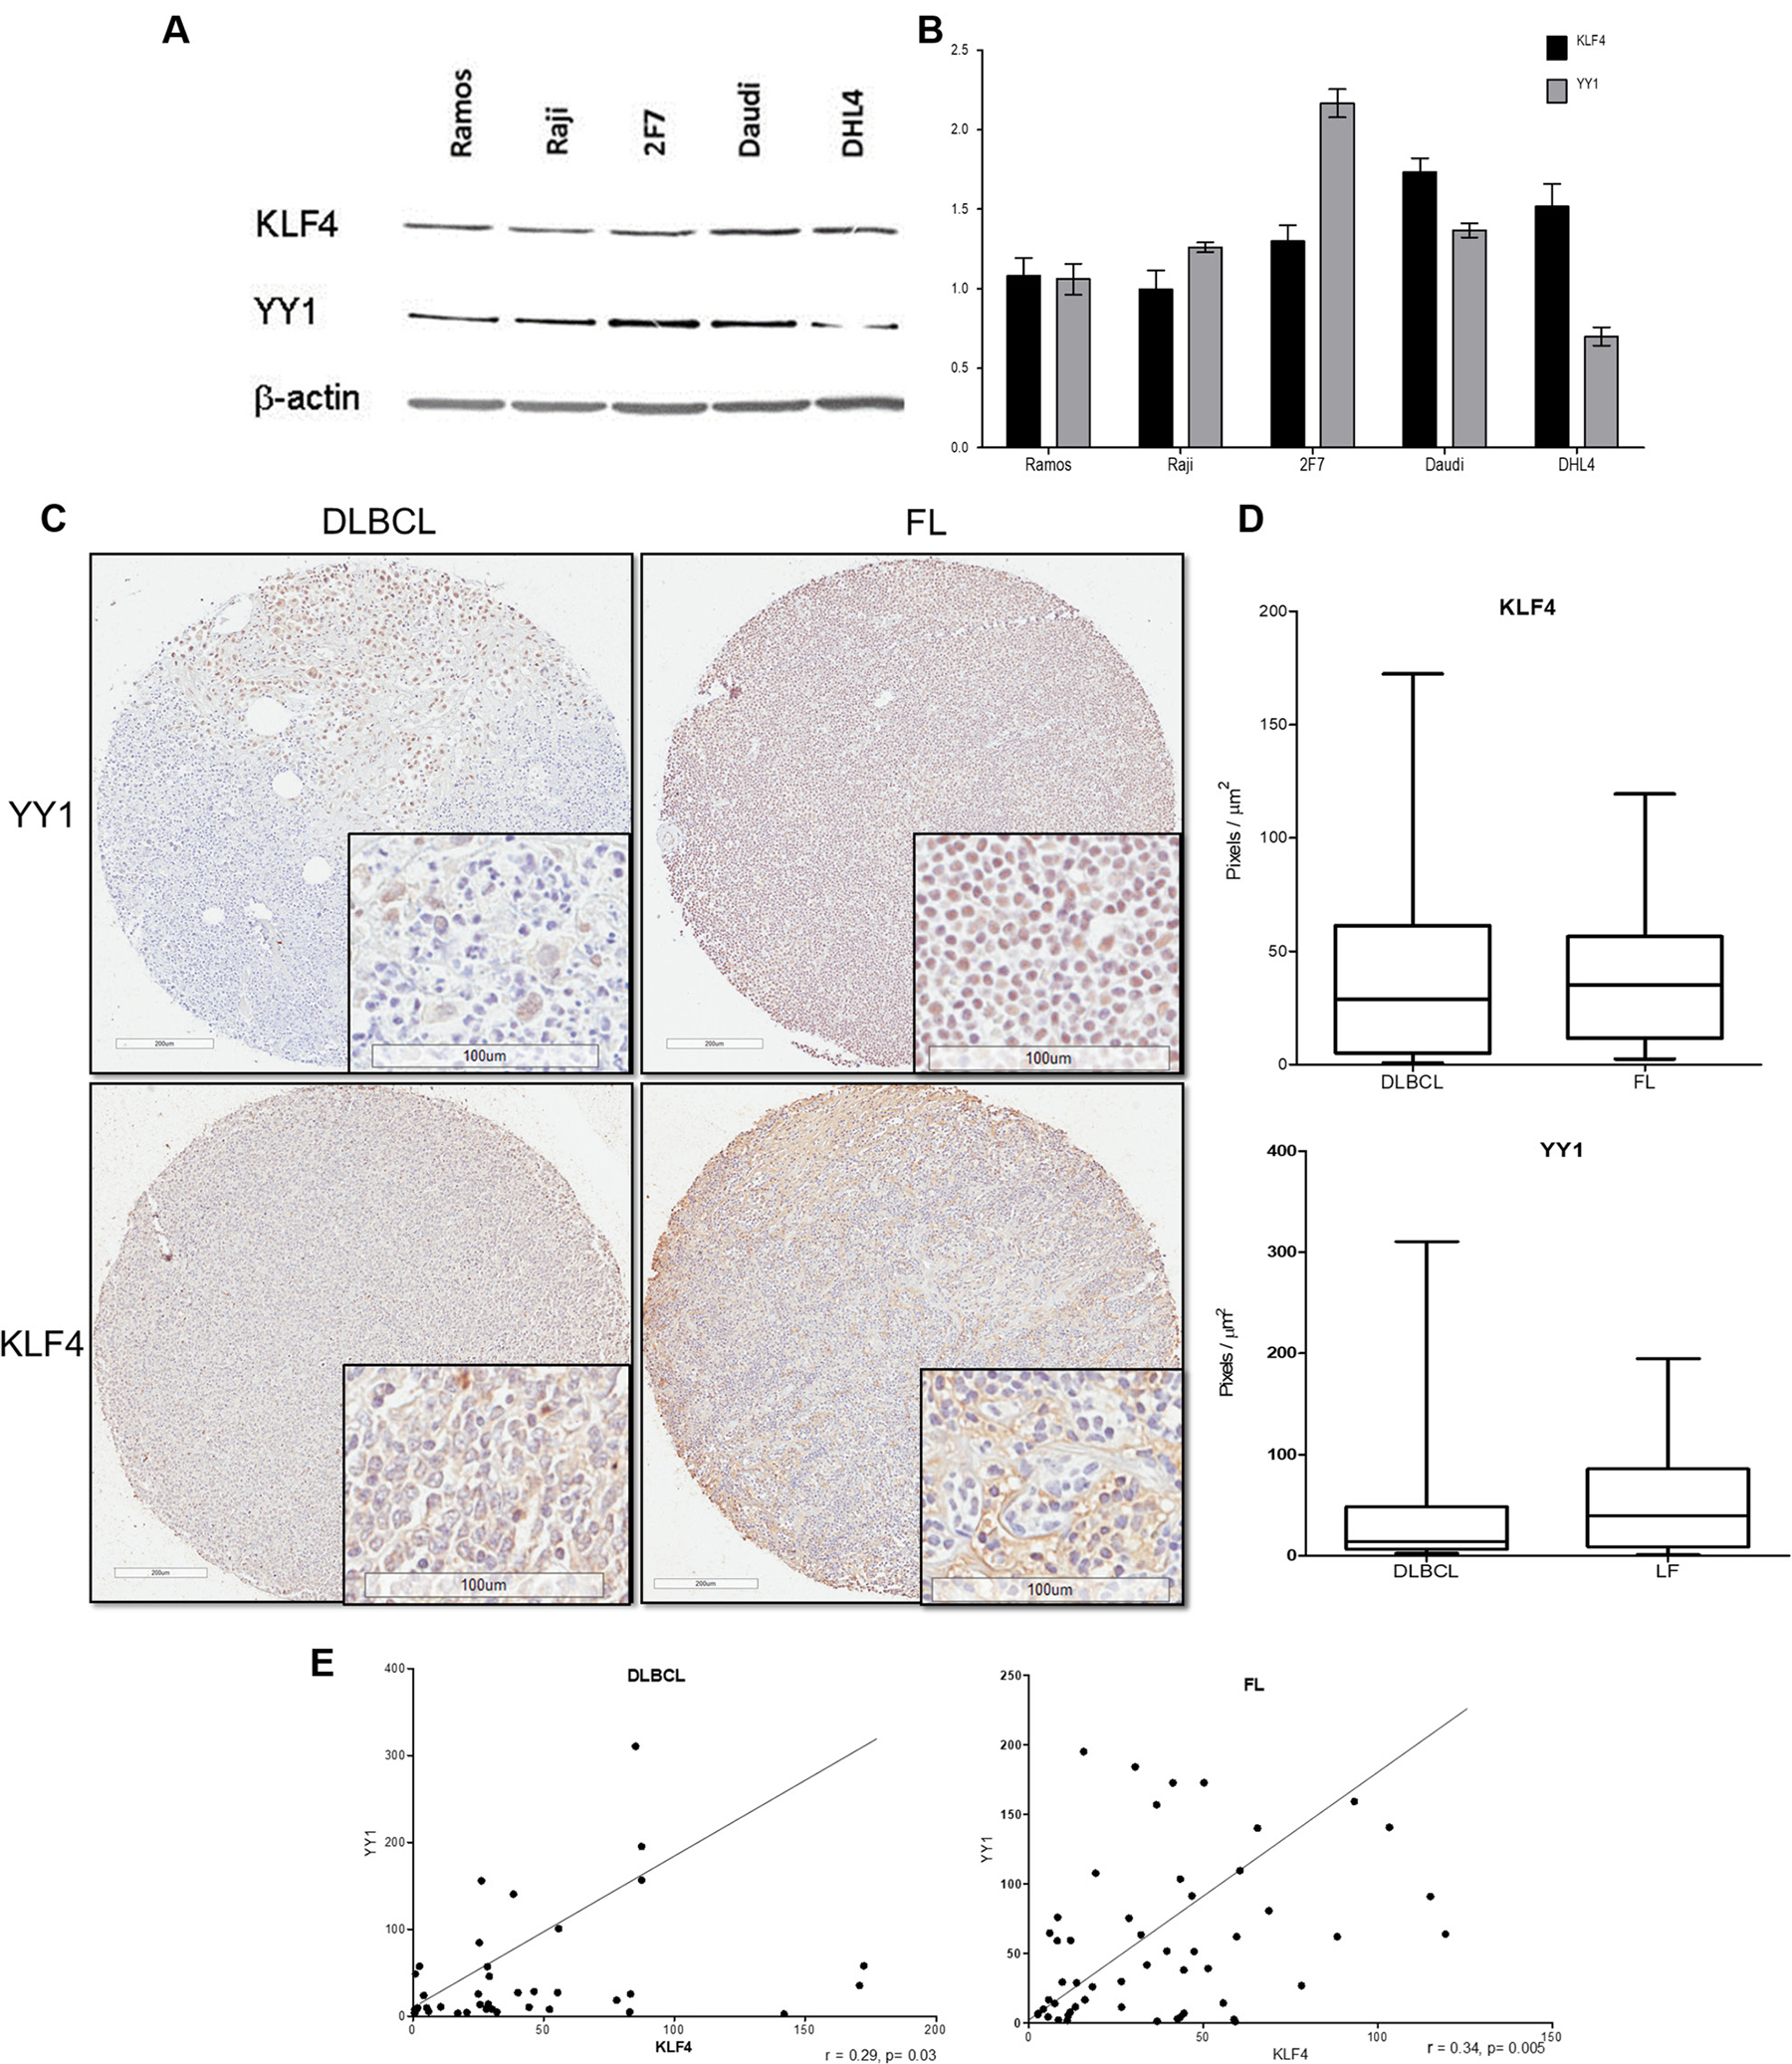 Expression of and correlation between KLF4 and YY1 in several tumor cell lines and NHL tissue arrays.